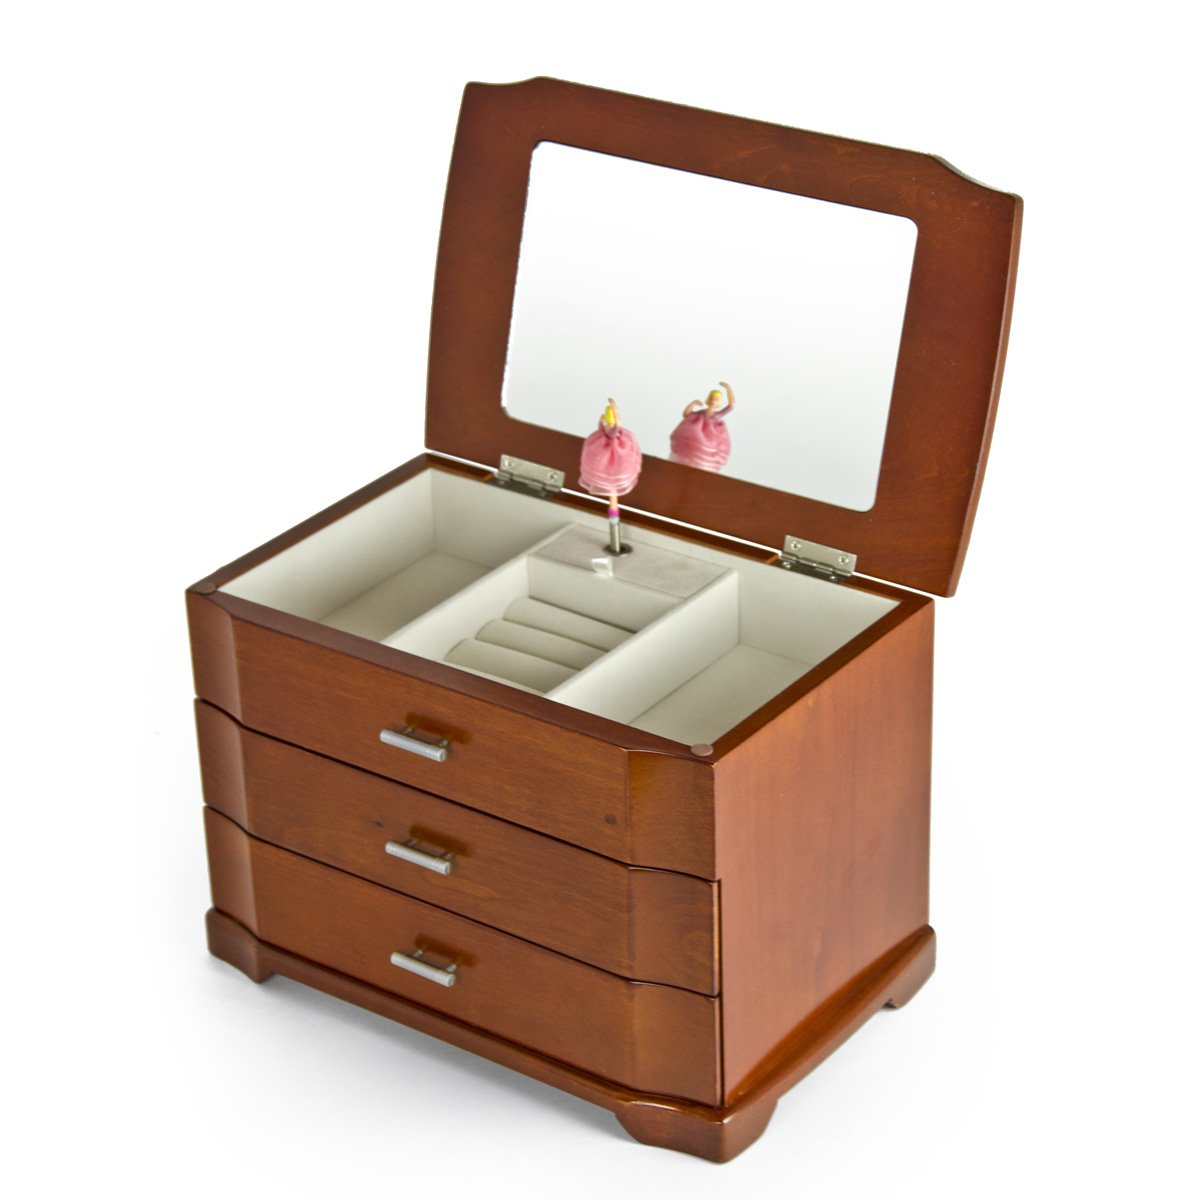 Modern Wood Tone 18 Note Ballerina 3 Tiered Musical Jewelry Box - Easy Song Selection - Take Me Out to the Ball Game by MusicBoxAttic (Image #2)